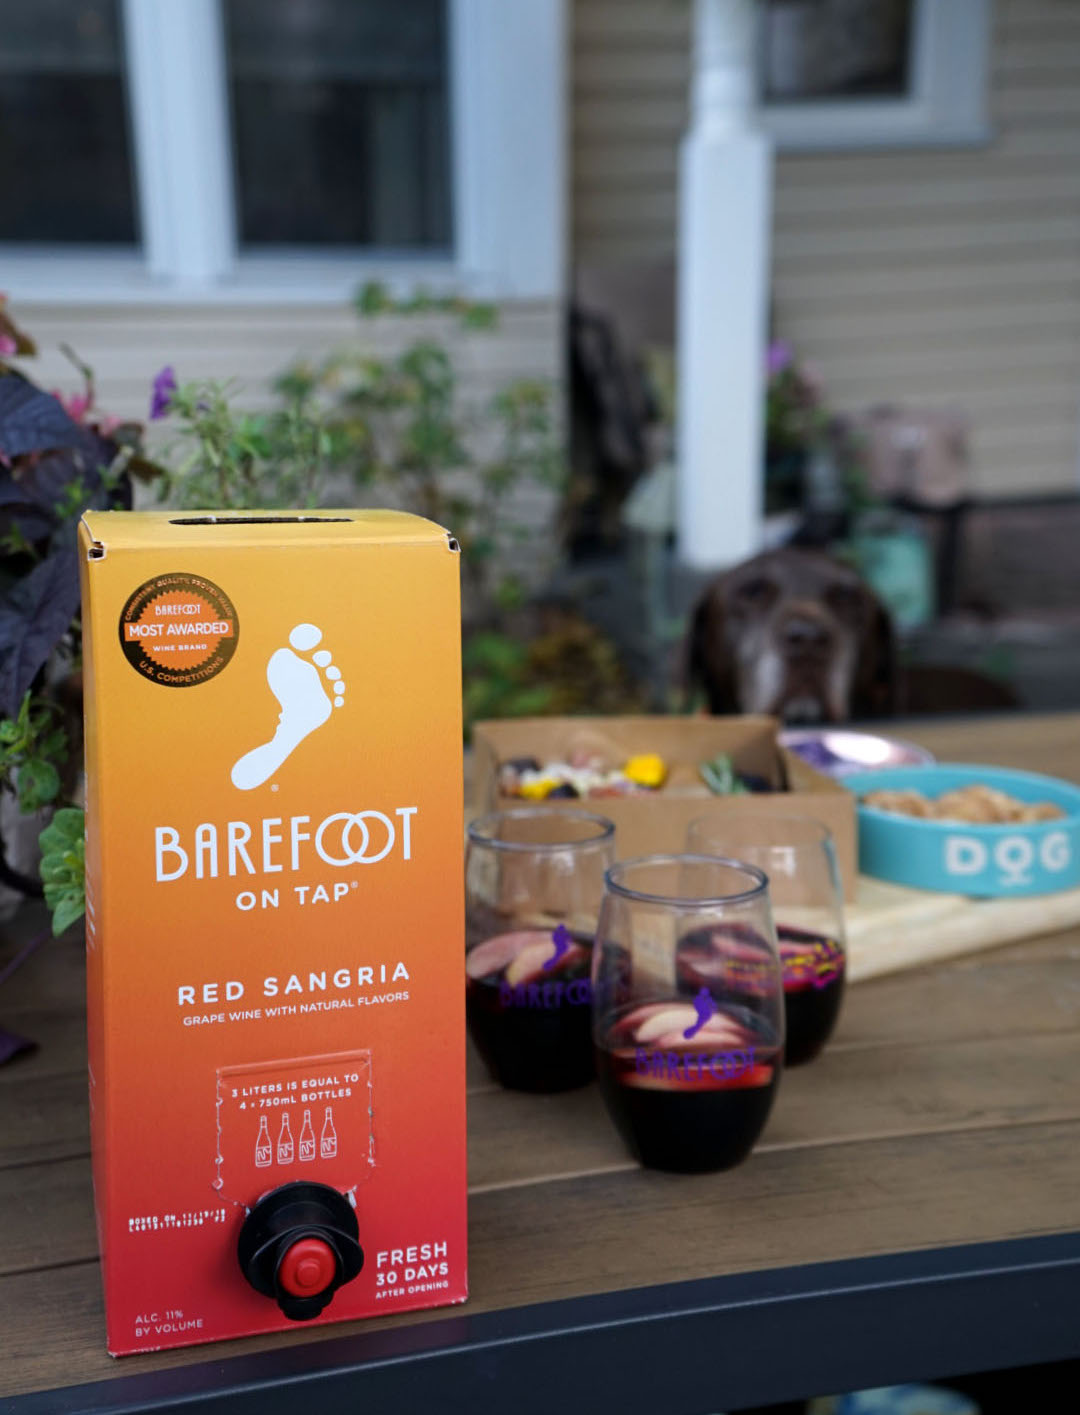 Barefoot on tap Red Sangria